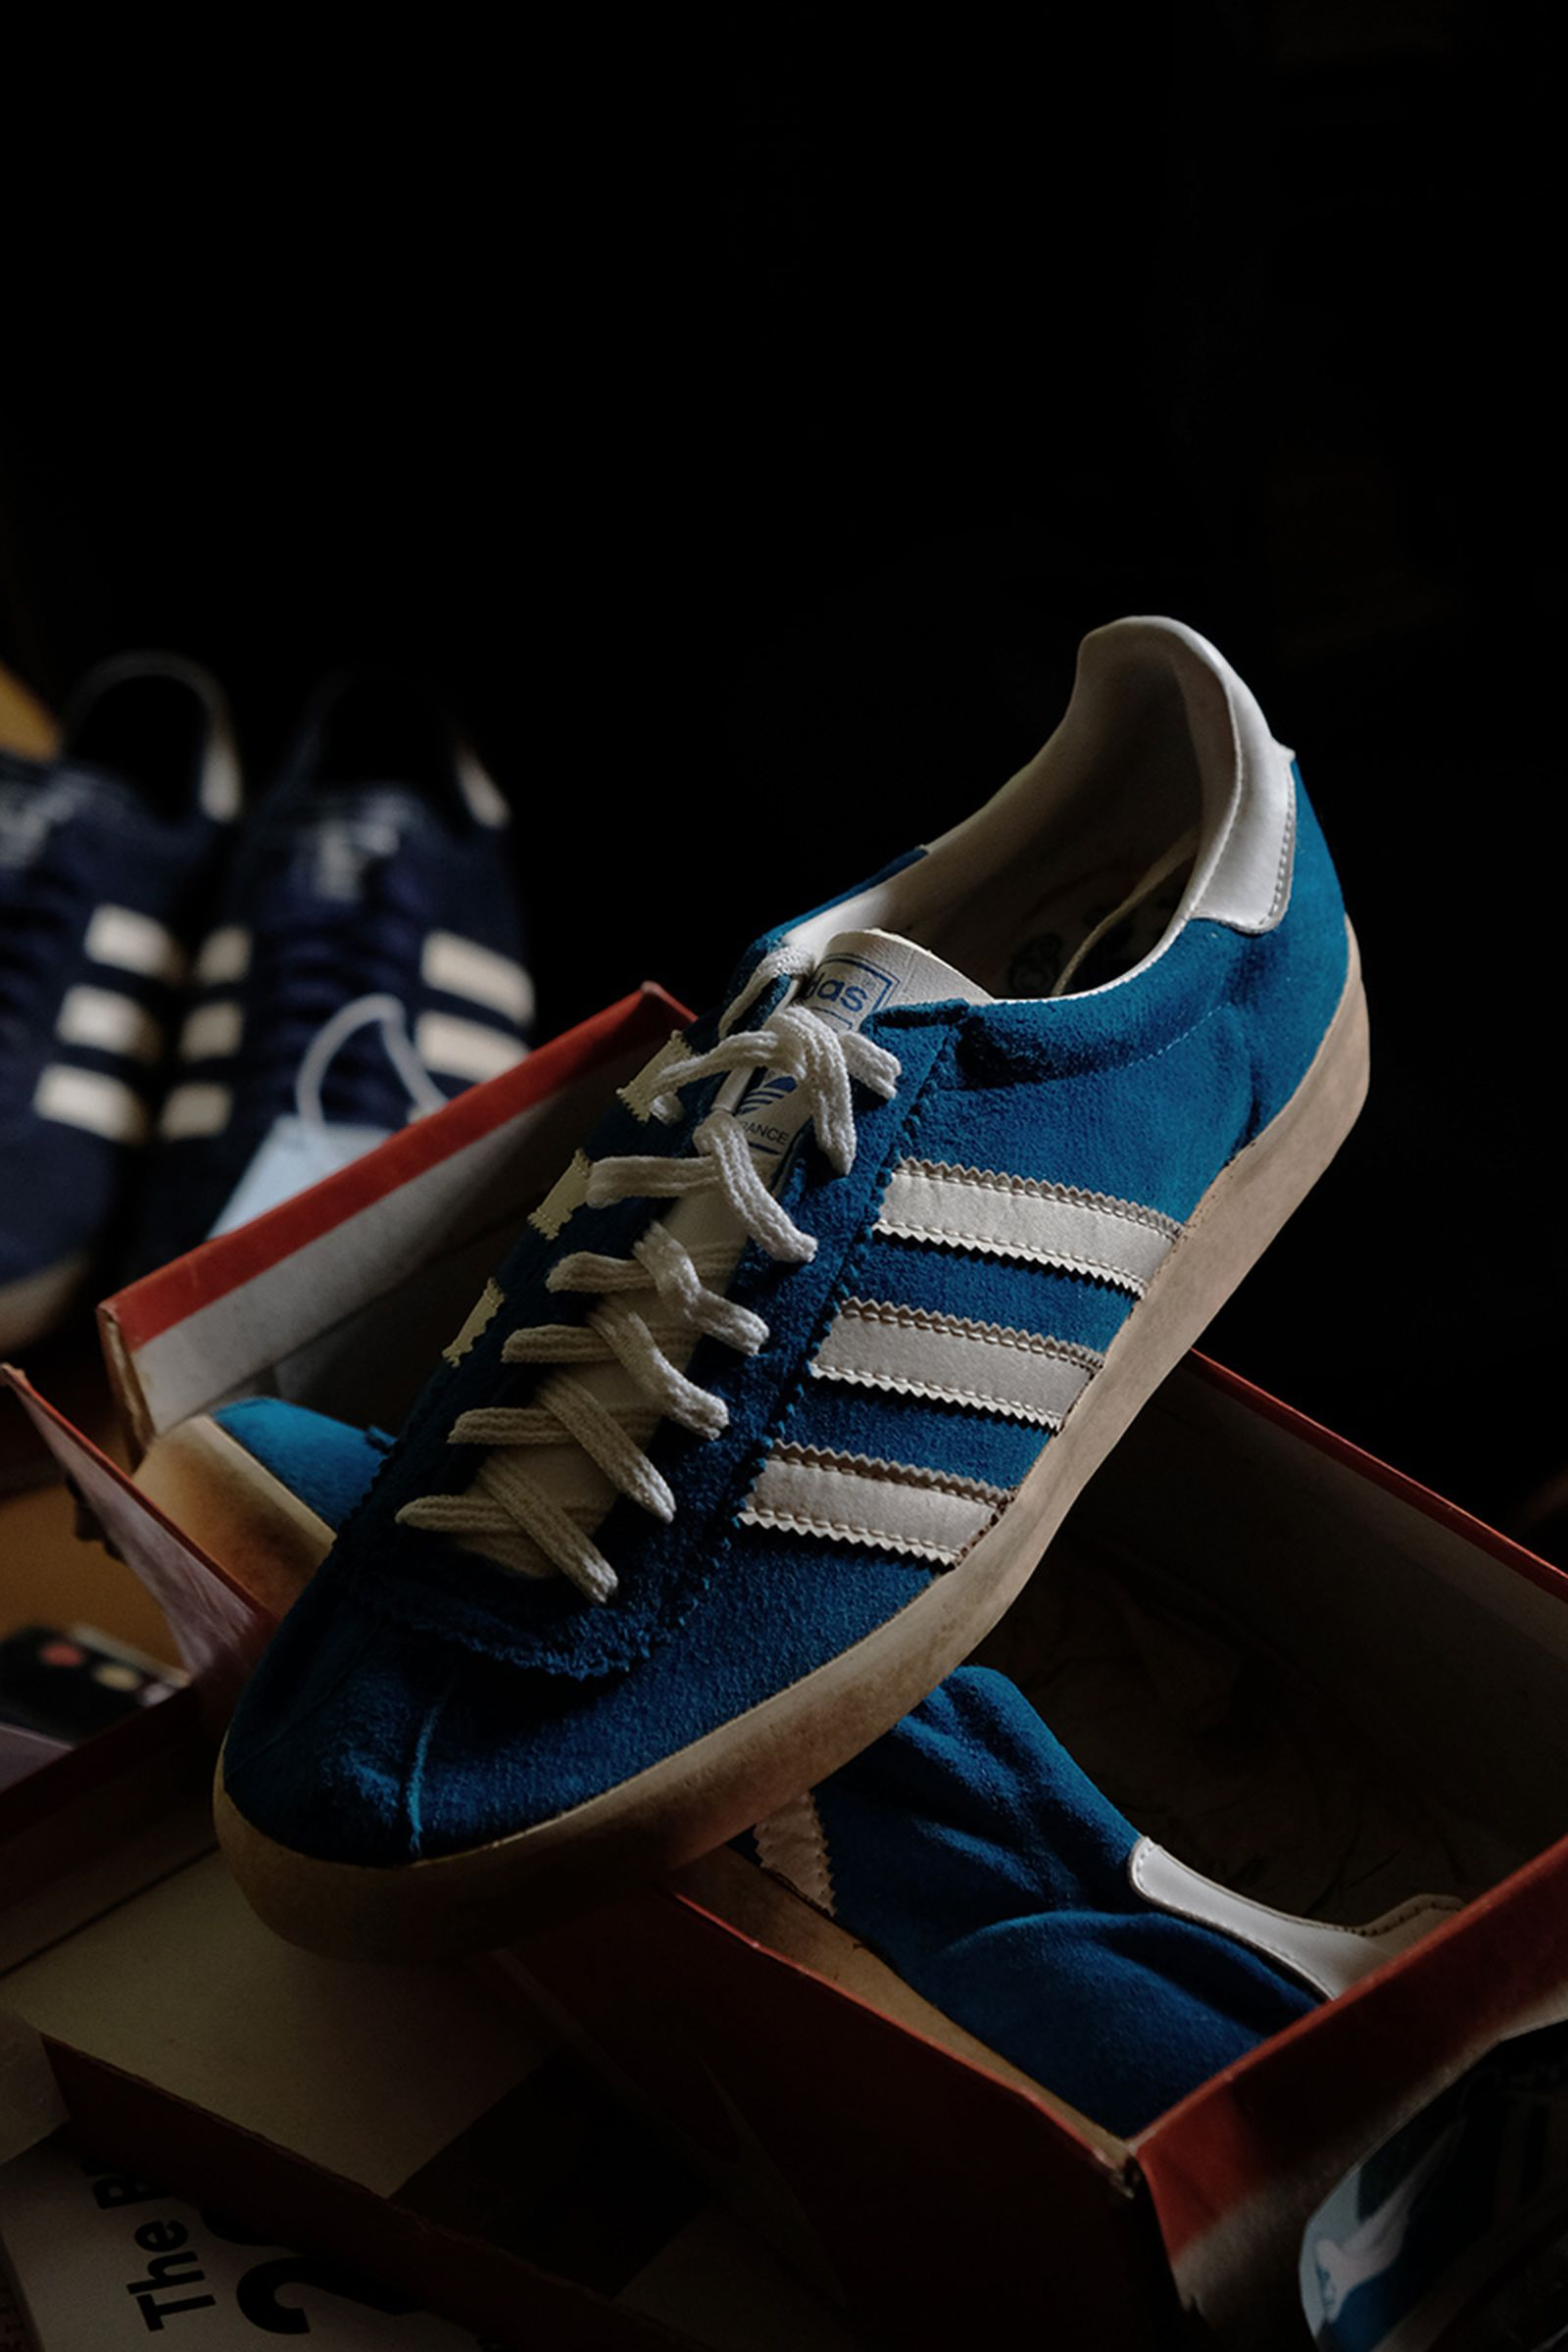 eddie-chang-adidas-collector-05